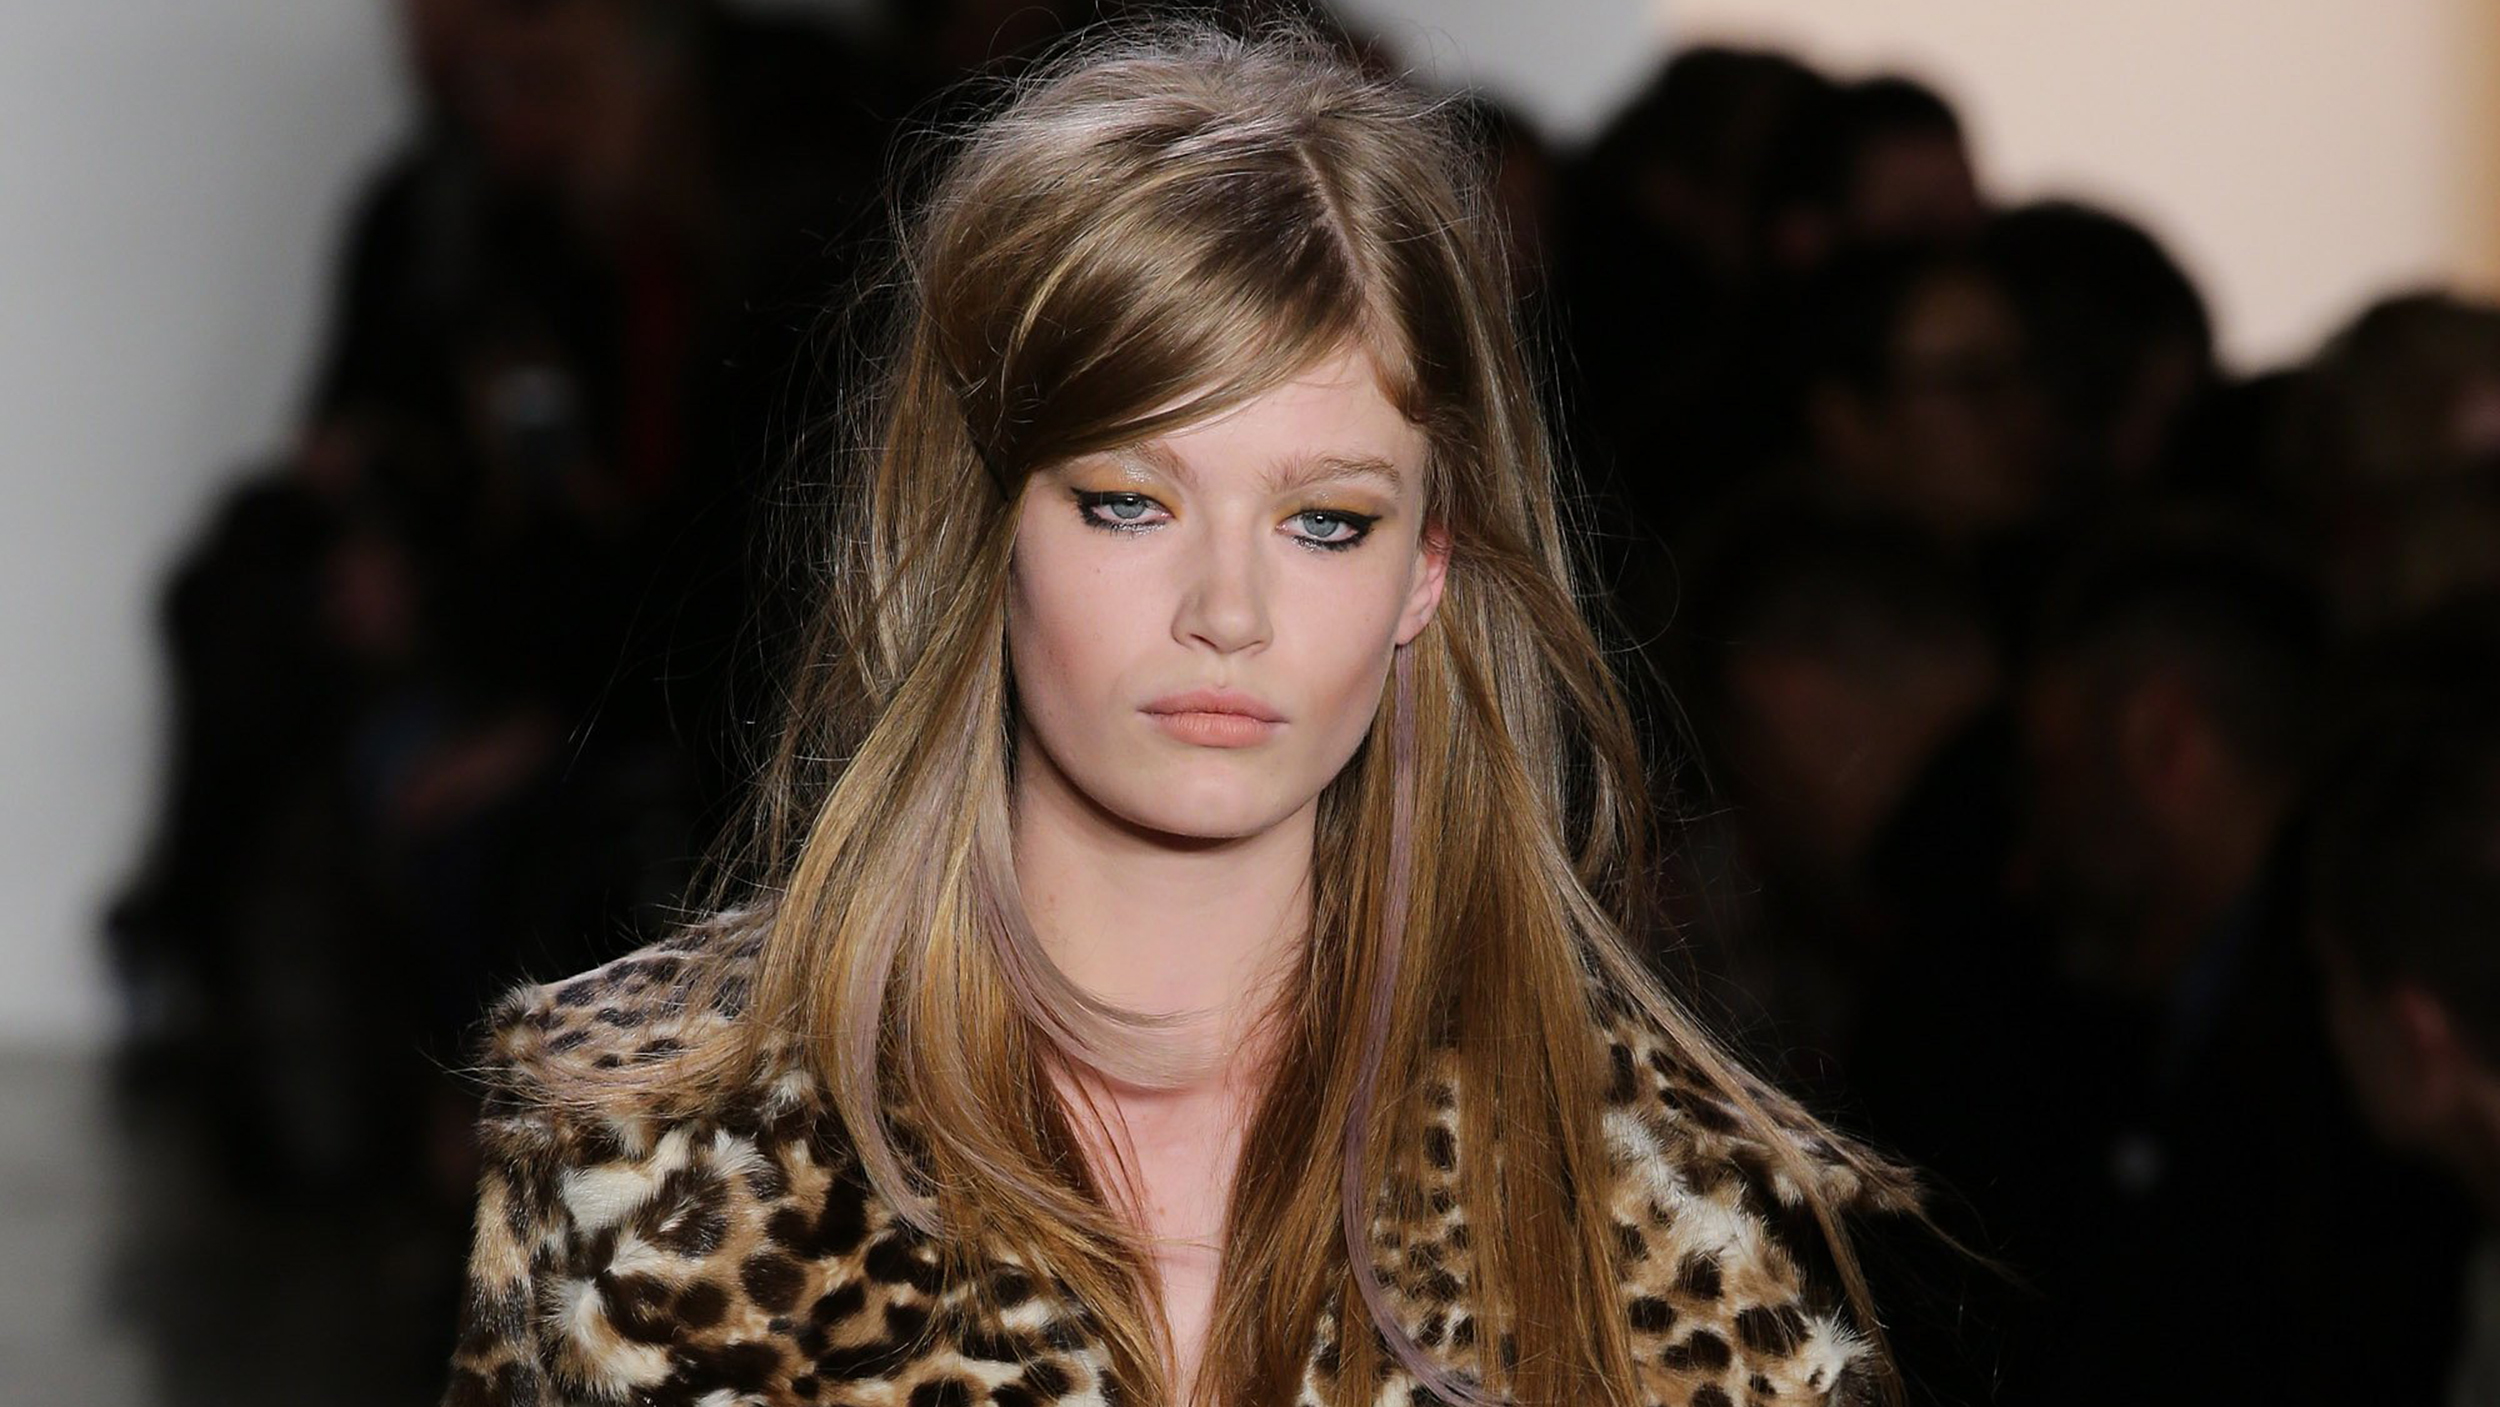 Violet Eyes Gold Braids 6 Best Beauty Trends From Fashion Week